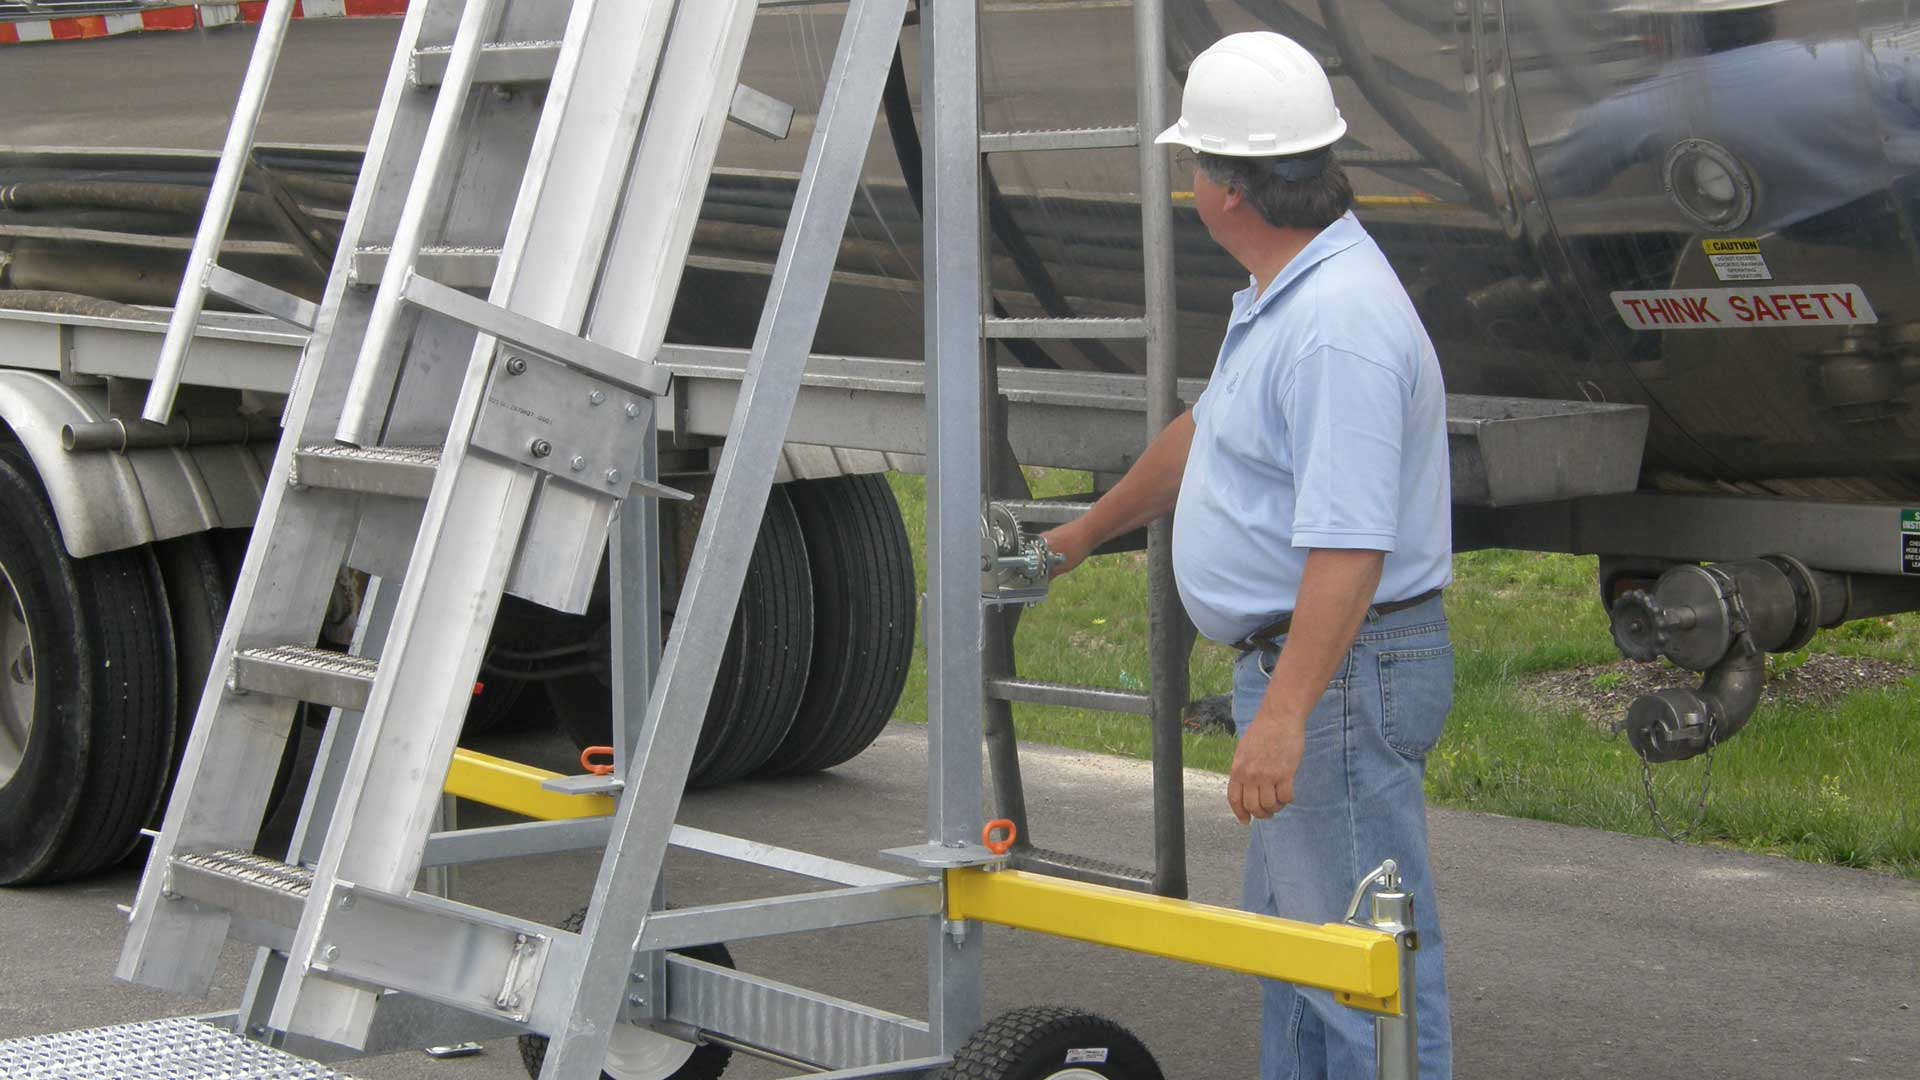 We also offer platforms for Hopper and Bulk cars with an adjustable height of 12' to 16'. Our standard portable truck access platform allows users to approach vehicles of varying heights, from 10' to 14'.